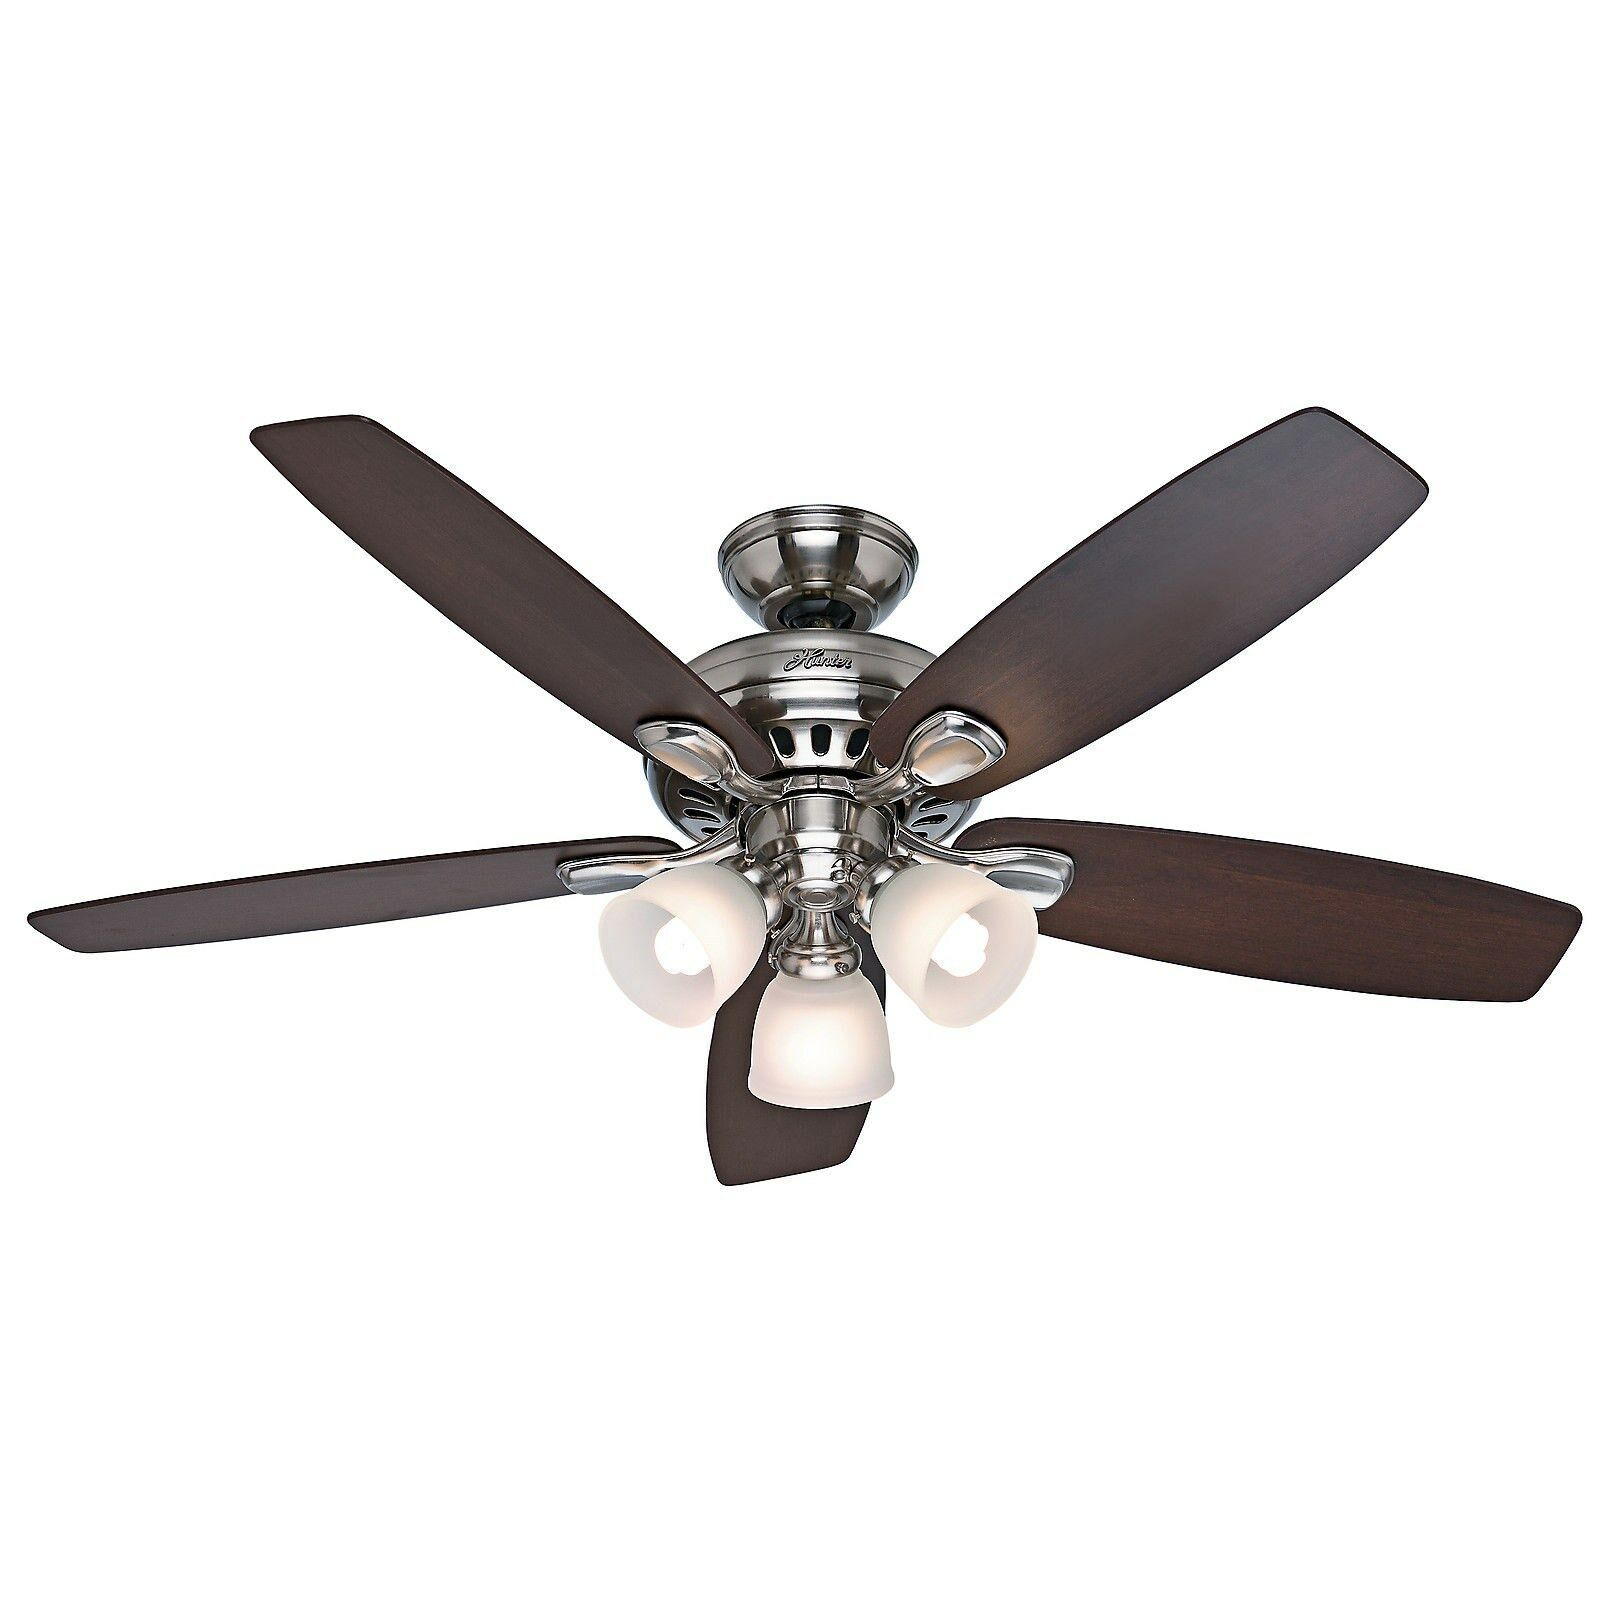 Control Ceiling Fan : Hunter quot brushed nickel ceiling fan with light remote